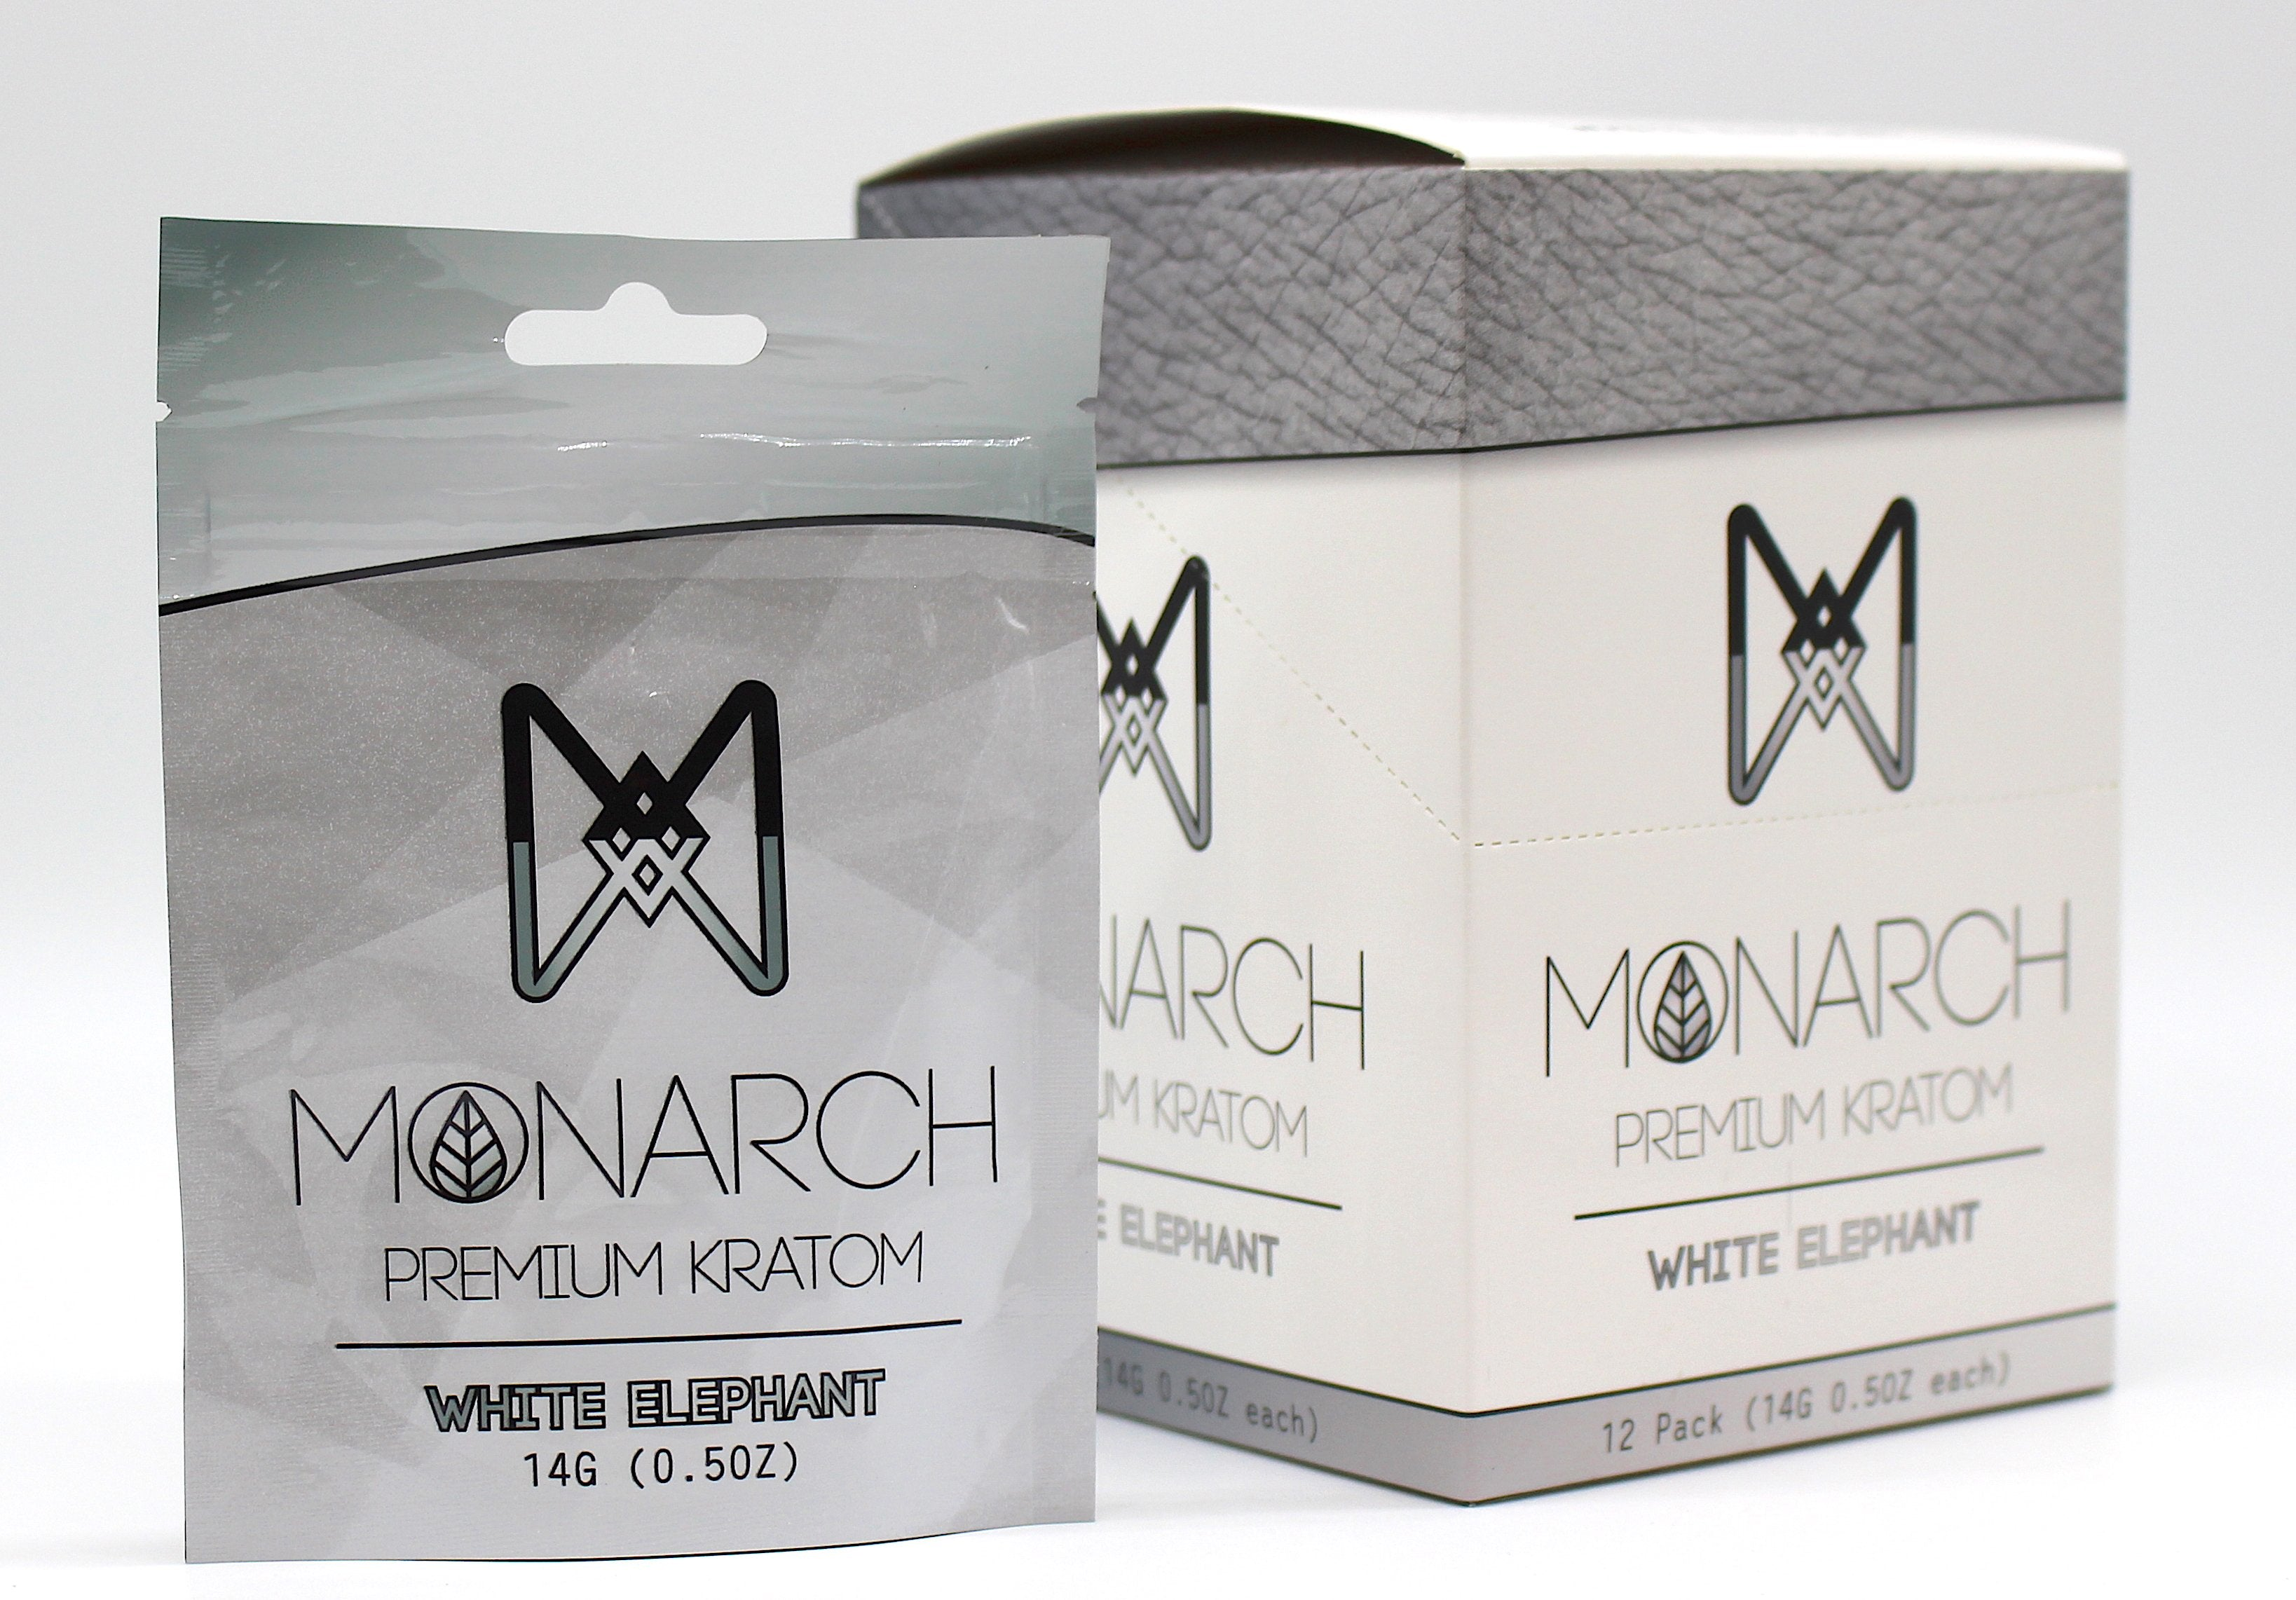 Monarch Premium Kratom 14G Powder